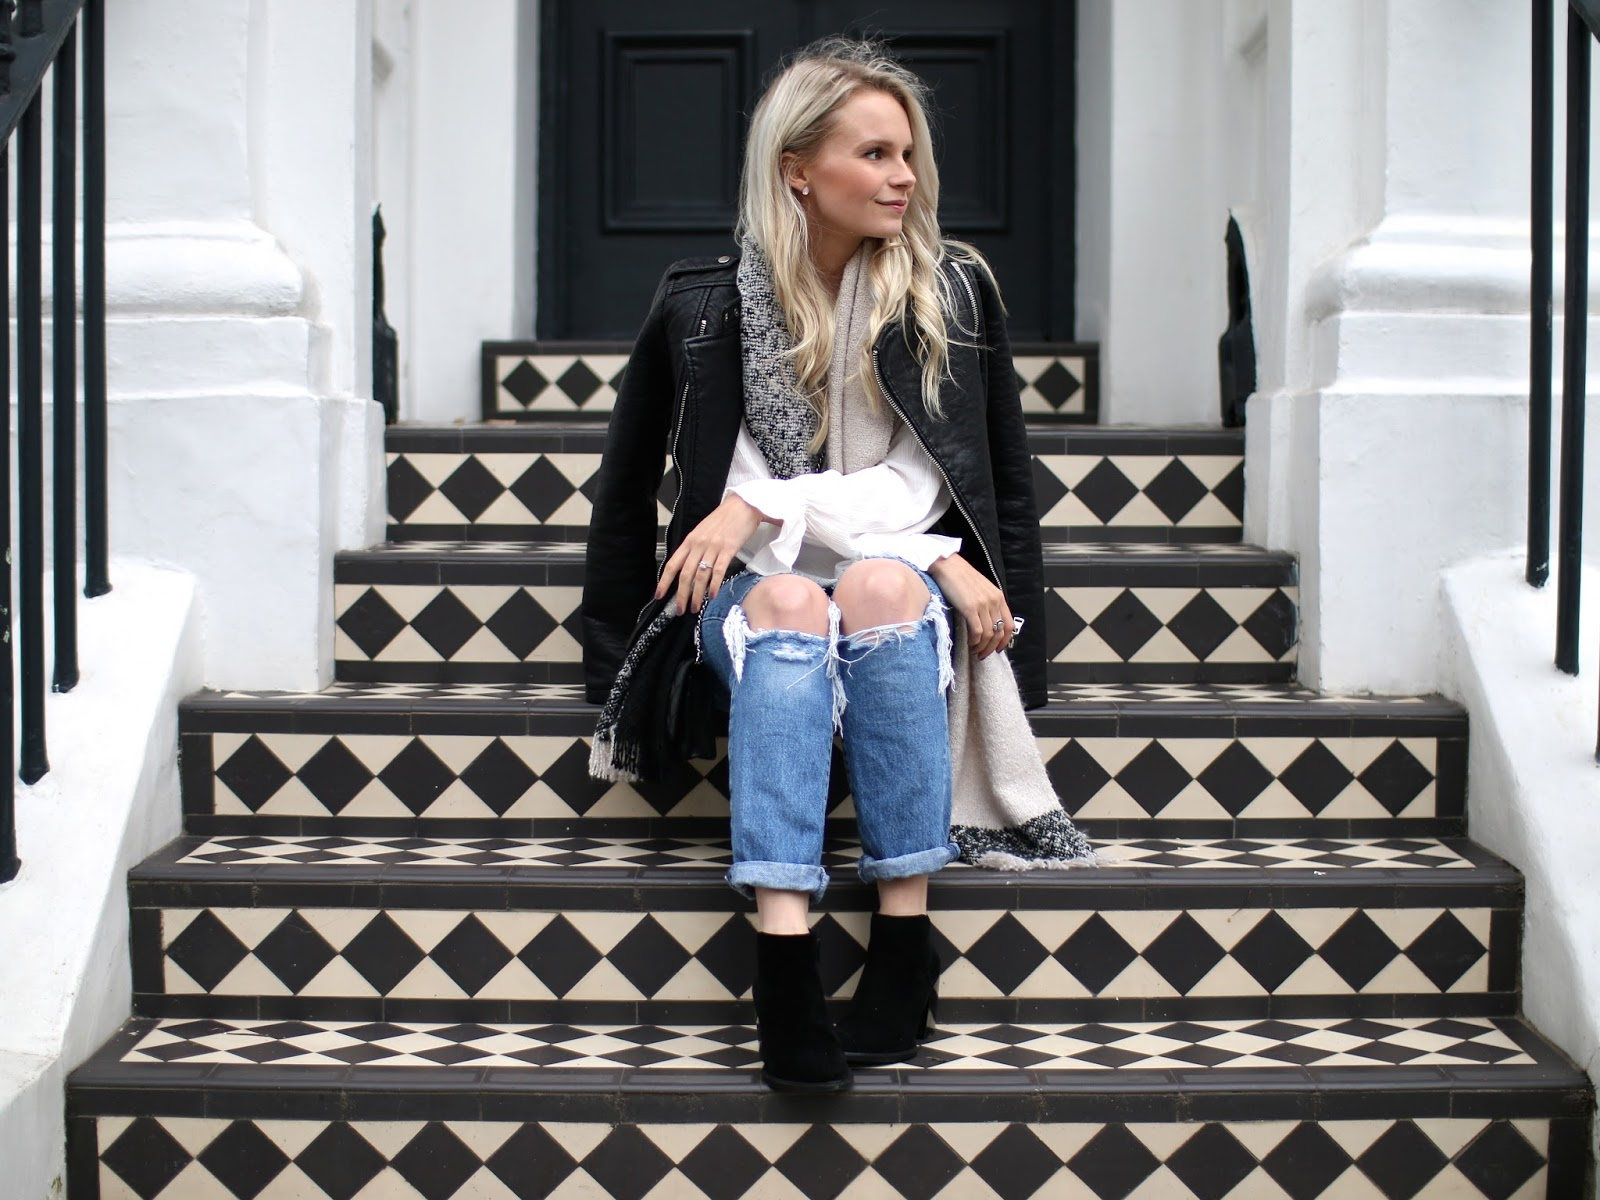 pretty london tiles in notting hill, all black and white floors, fashion blogger in ripped jeans